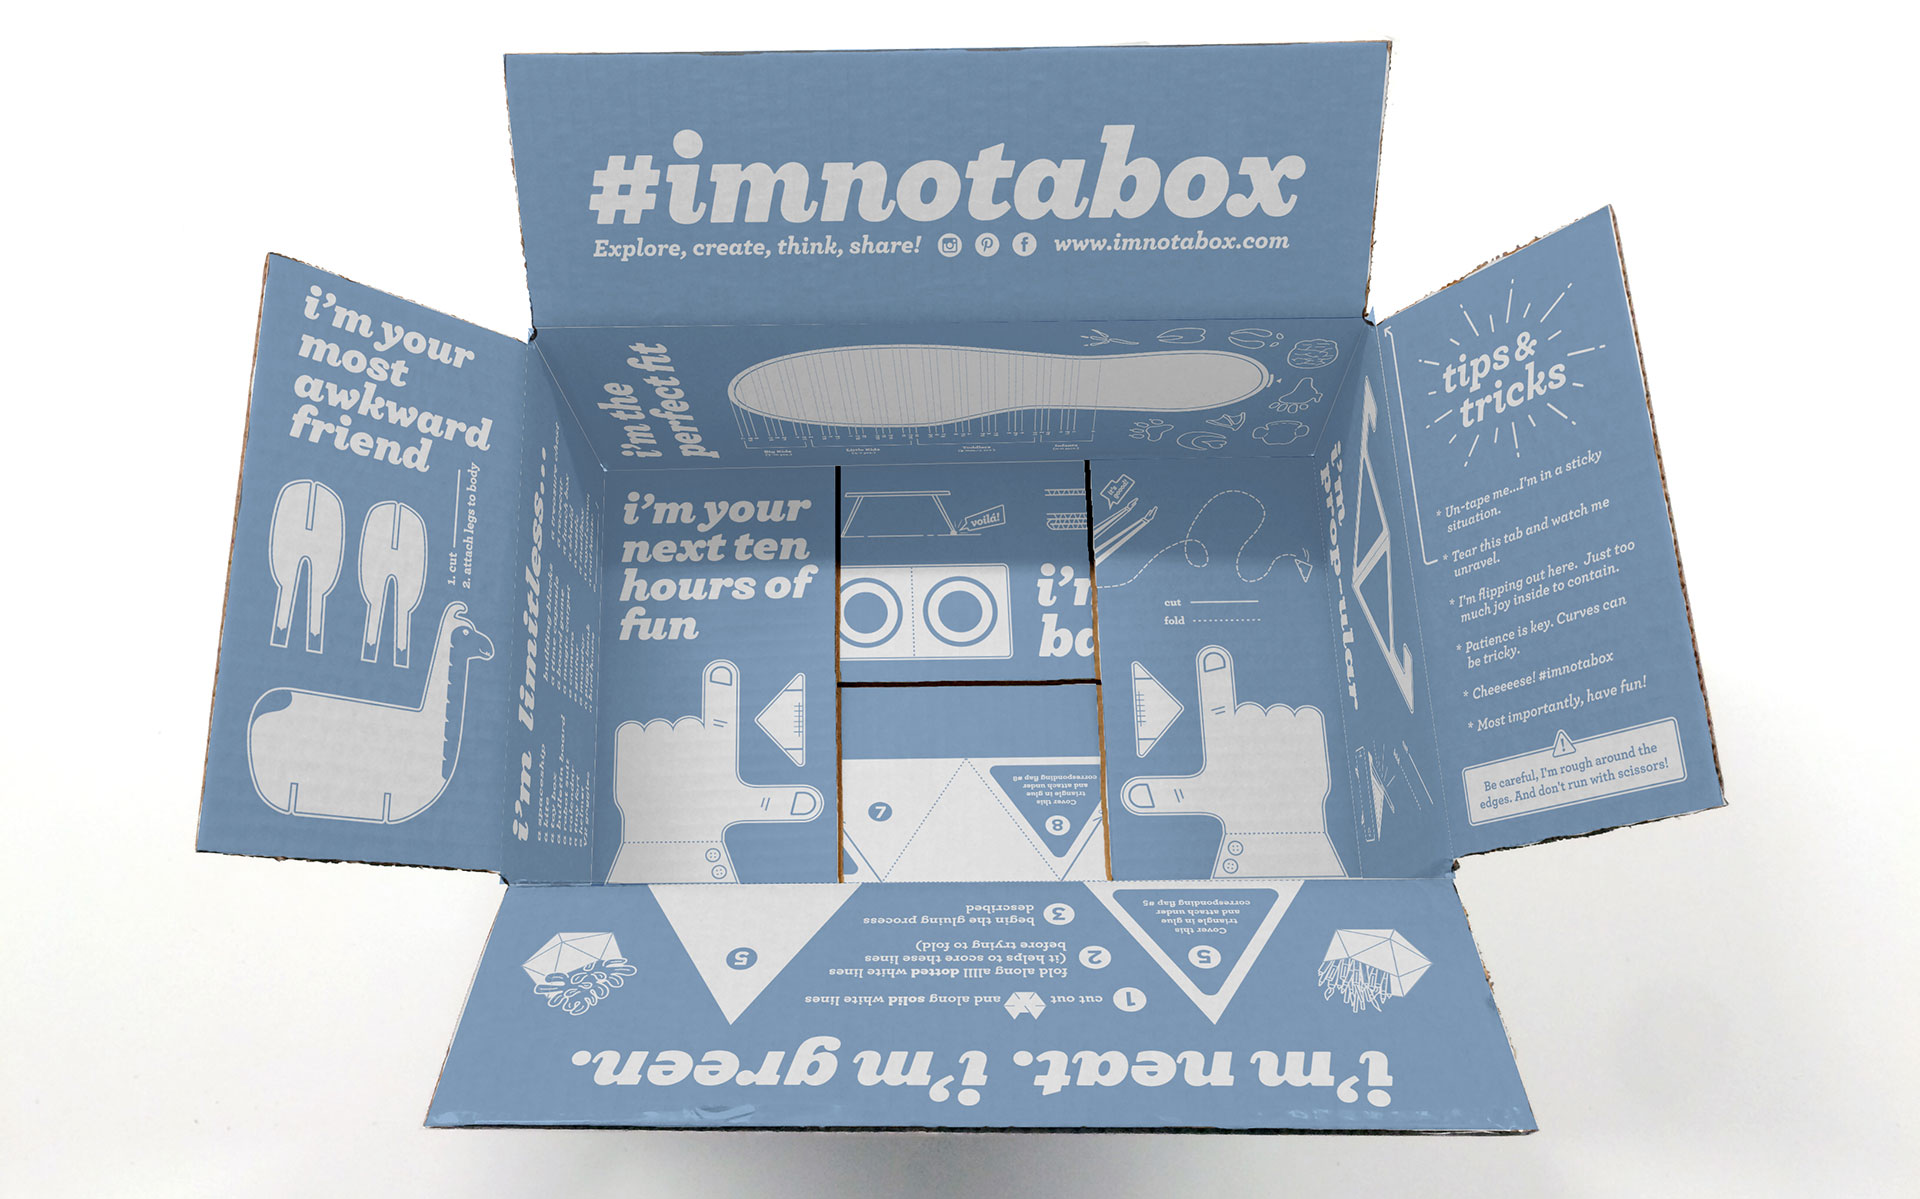 Zappos U2019 Cool New Shoebox Can Be Cut Up And Repurposed In A